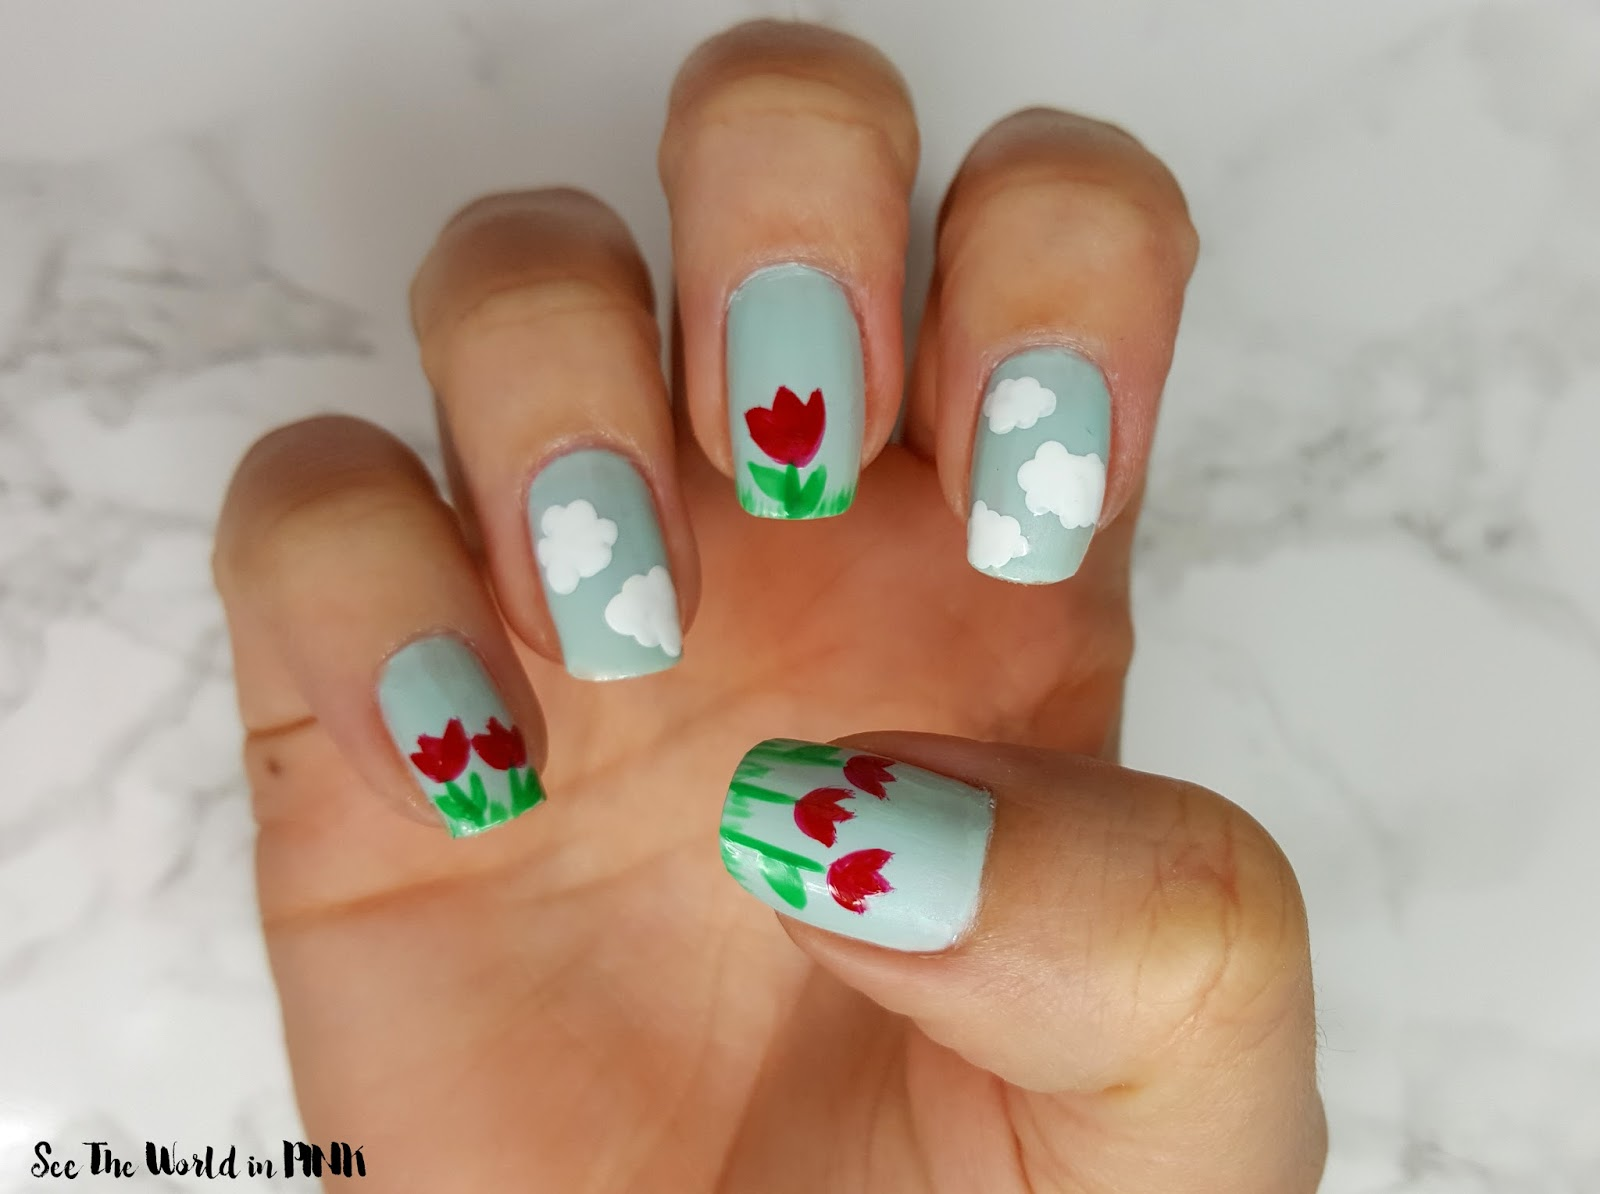 Manicure Monday - Floral Nails ~ Tulips and Clouds Nail Art + How-to!